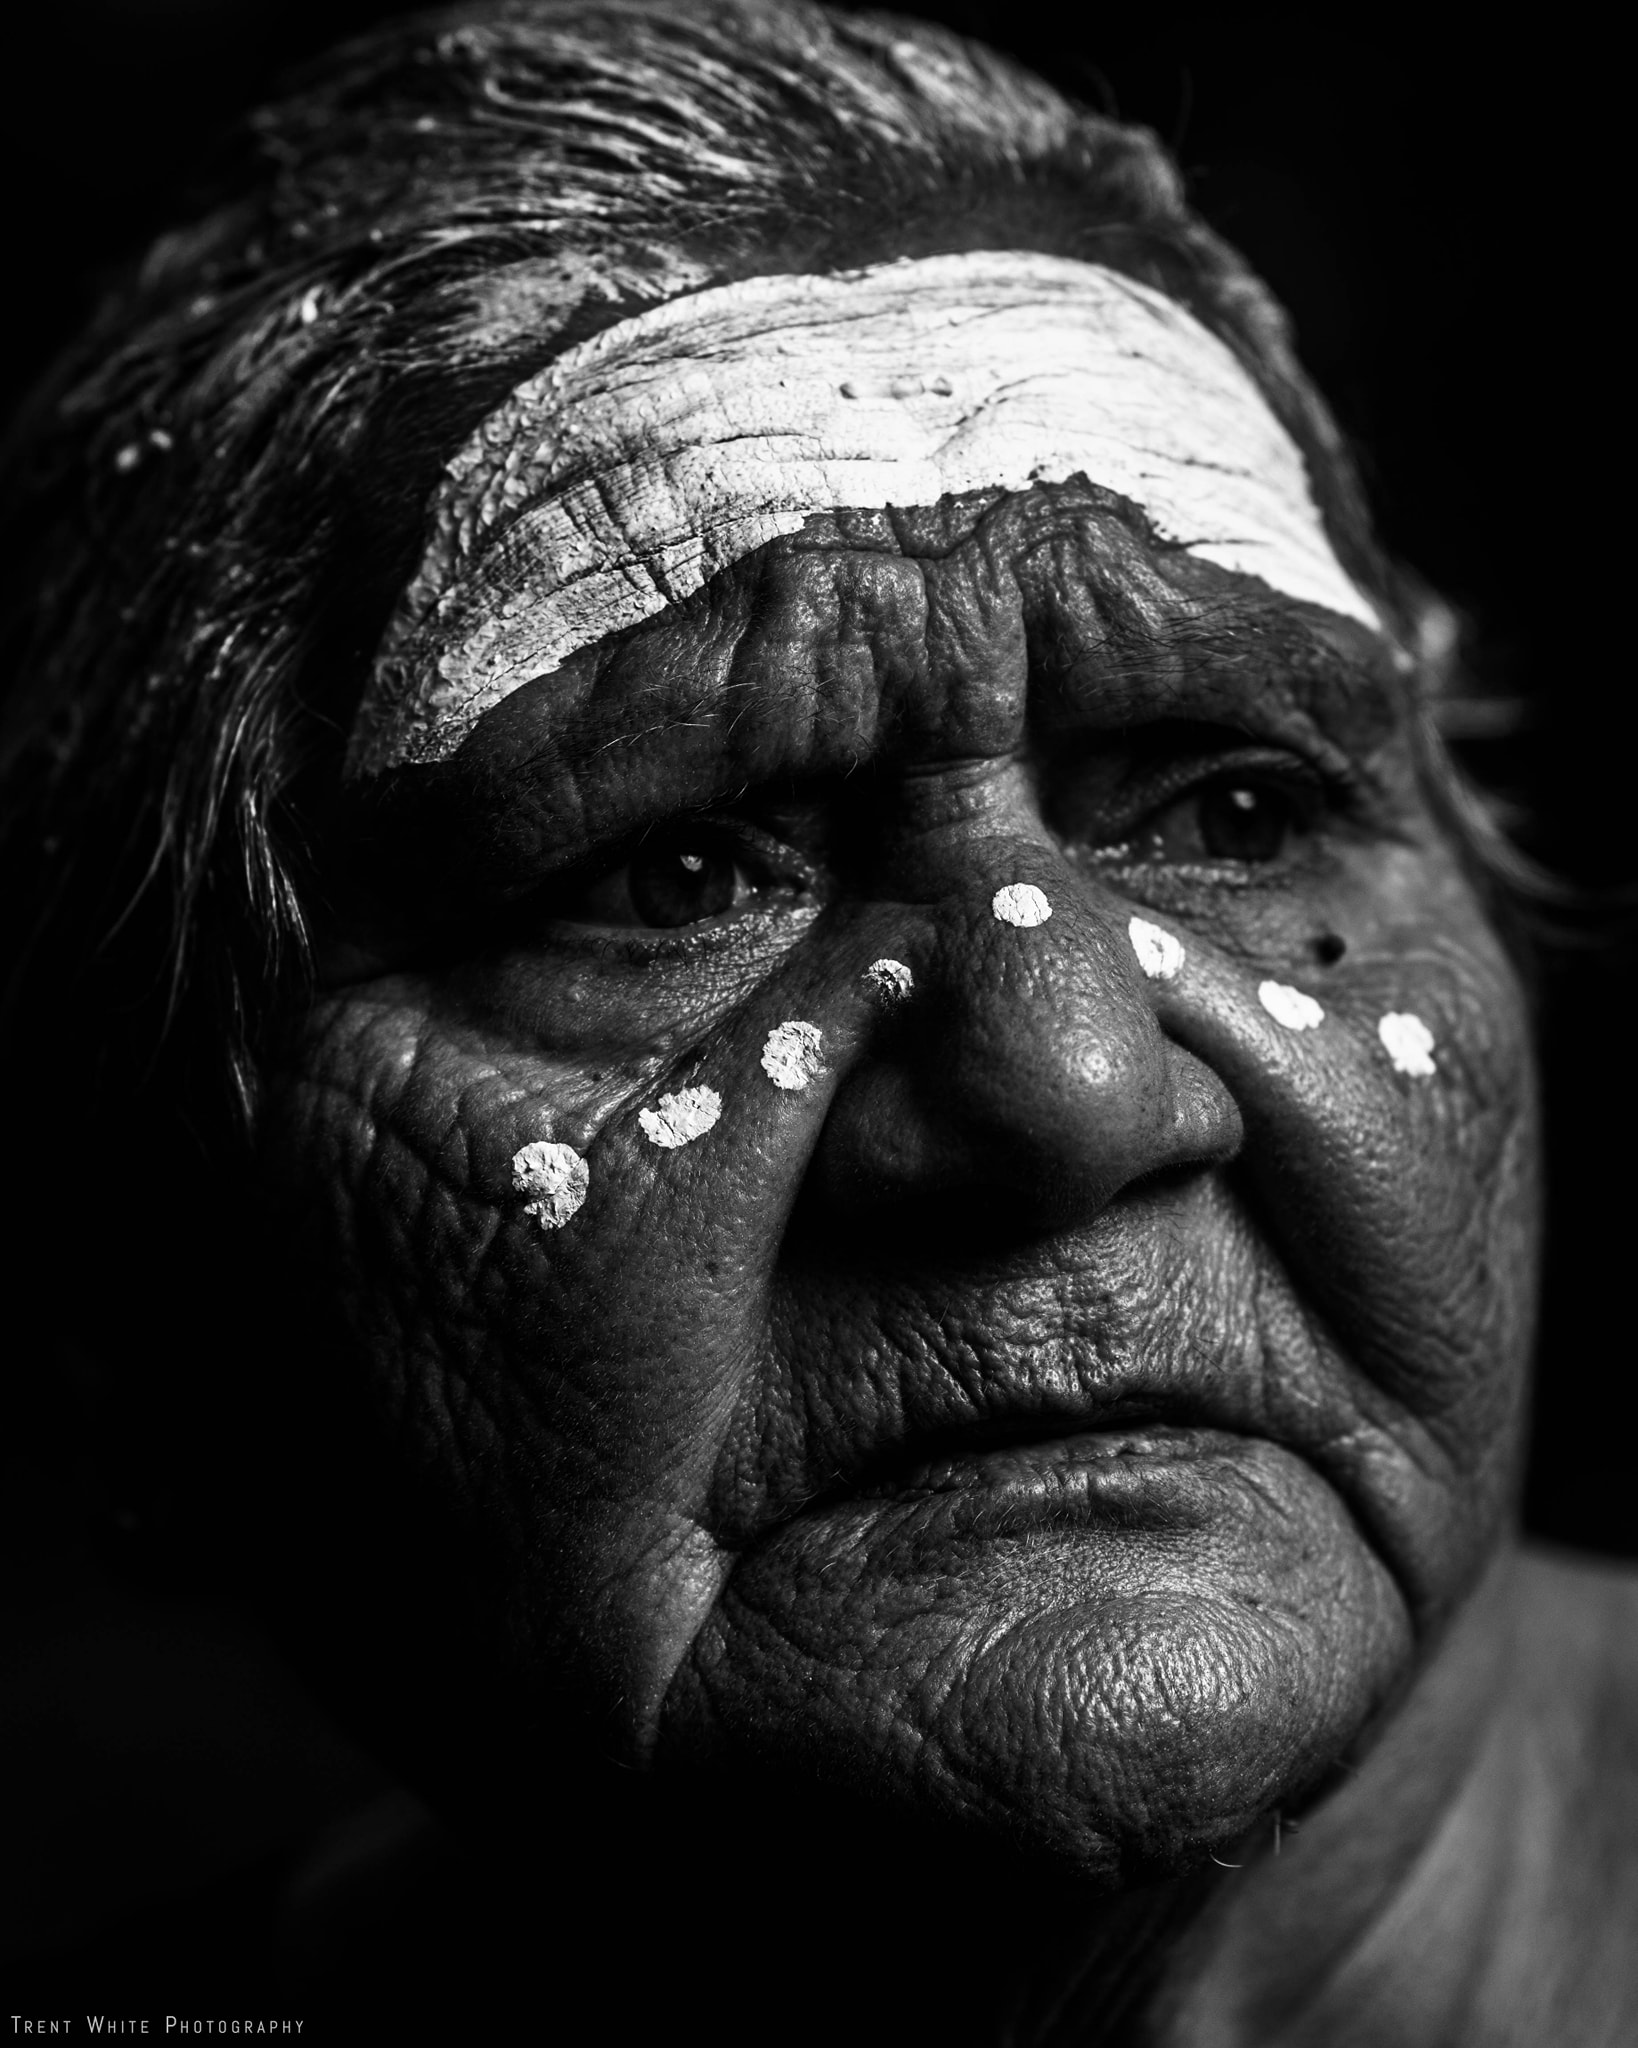 Aunty Venita Mann nee Fisher, close up, black and white, dots and lines painted on her face.